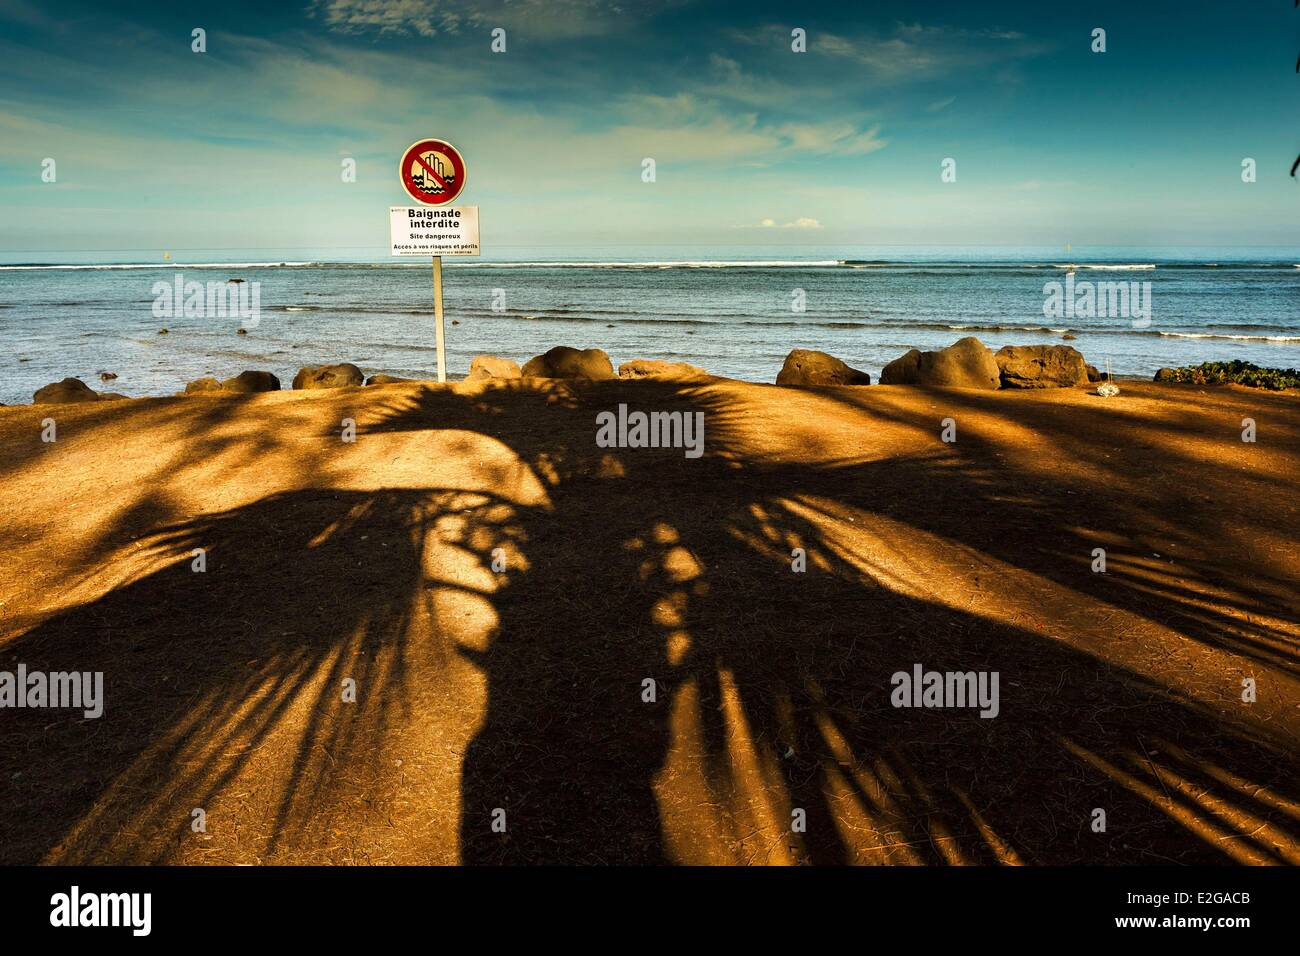 France Ile de la Reunion (French overseas department) Saint Leu shadows of palm trees on the waterfront prohibits - Stock Image